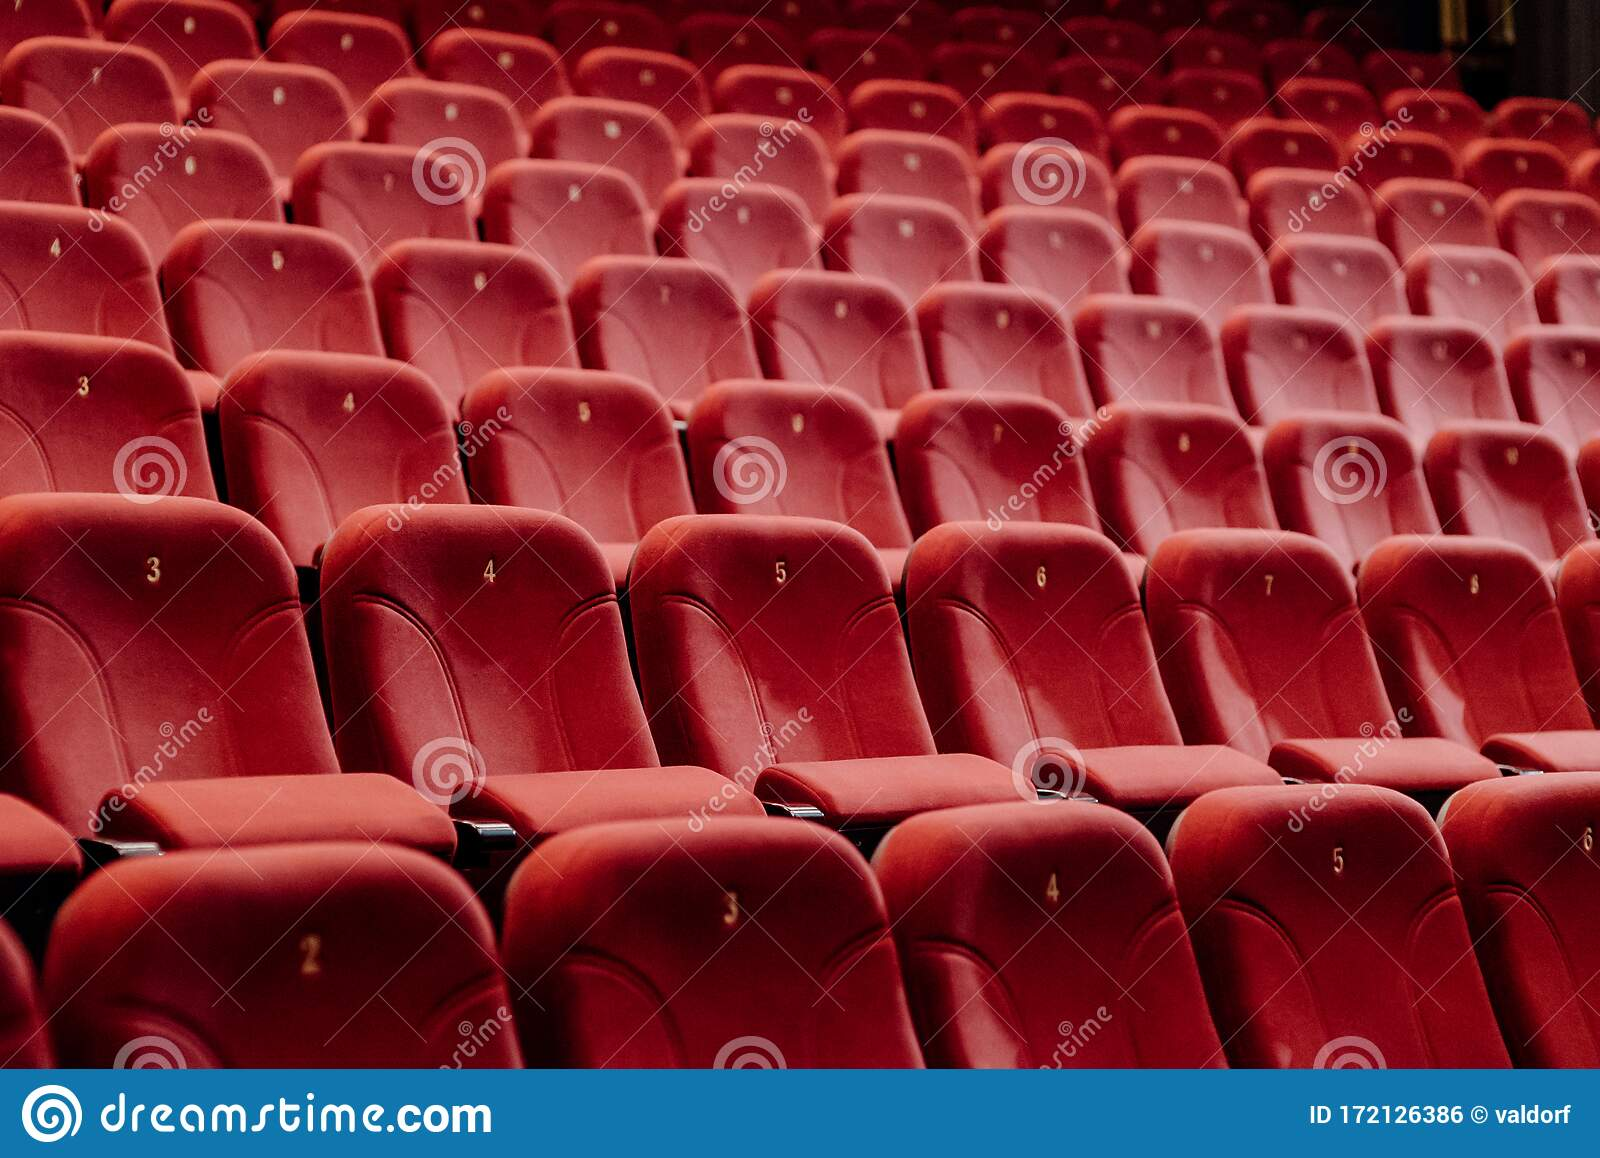 Empty Theater Chairs In The Theater Stock Photo Image Of Premiere Movie 172126386